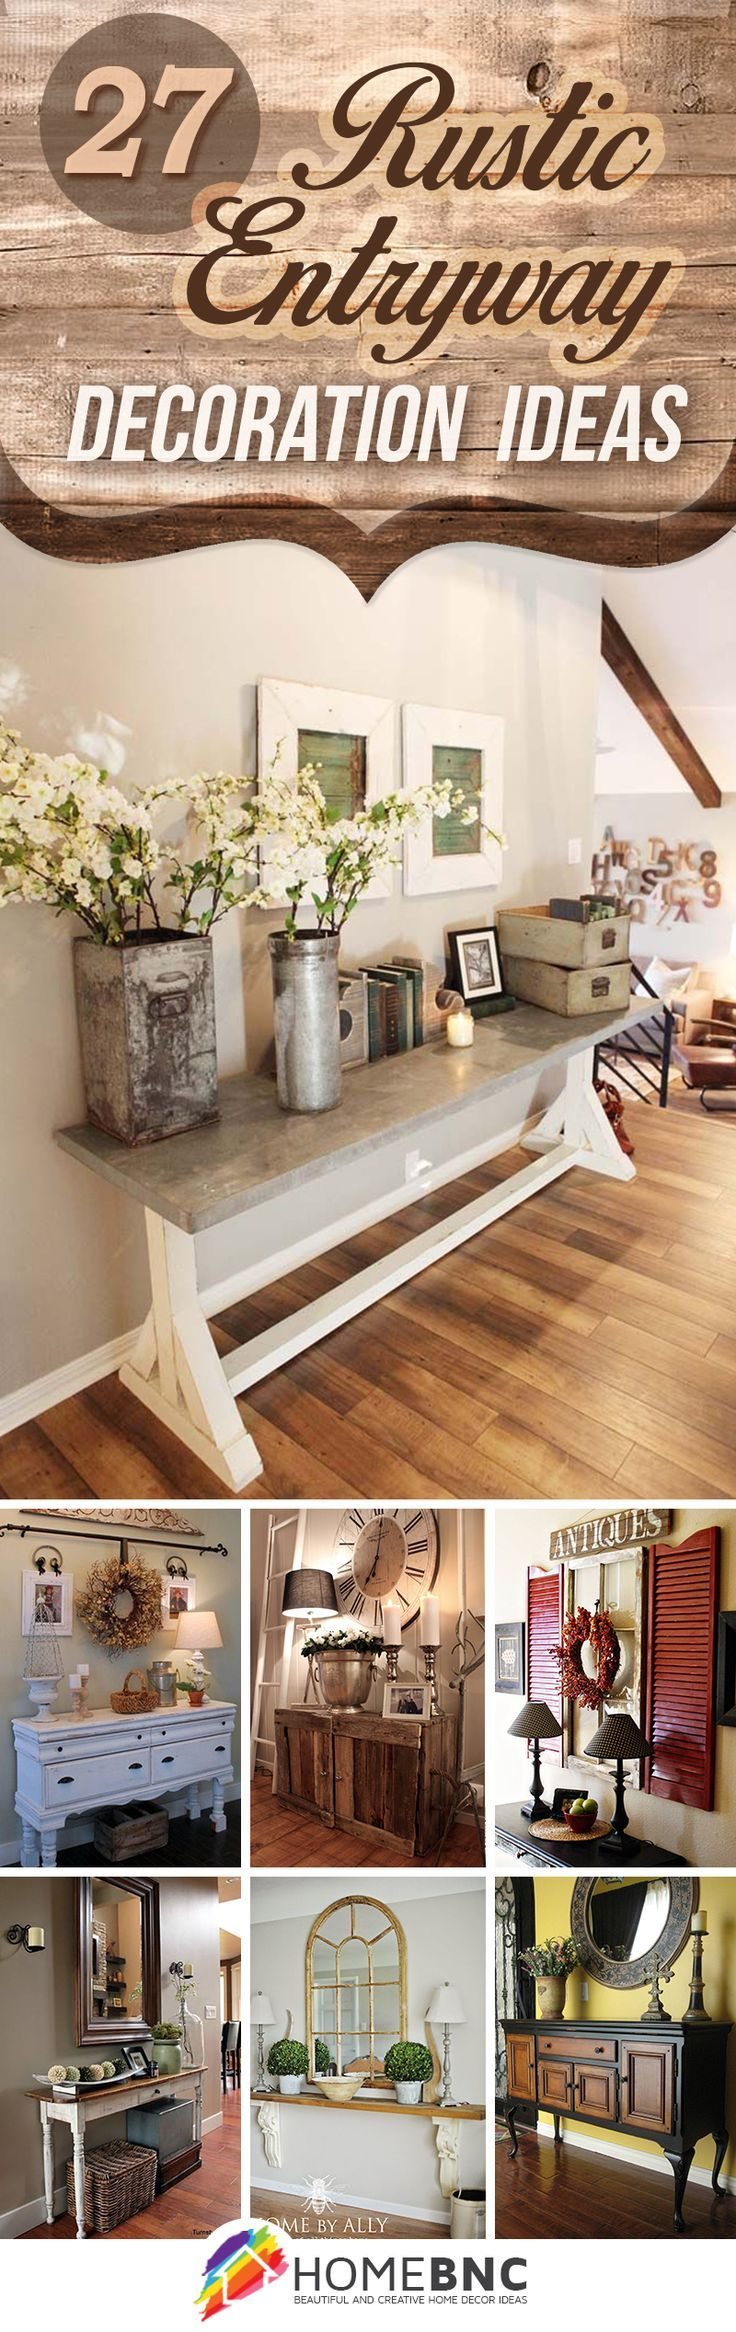 awesome 27 Welcoming Rustic Entryway Decorating Ideas That Every Guest Will Love by http://www.best-100-home-decor-pictures.xyz/decorating-ideas/27-welcoming-rustic-entryway-decorating-ideas-that-every-guest-will-love/